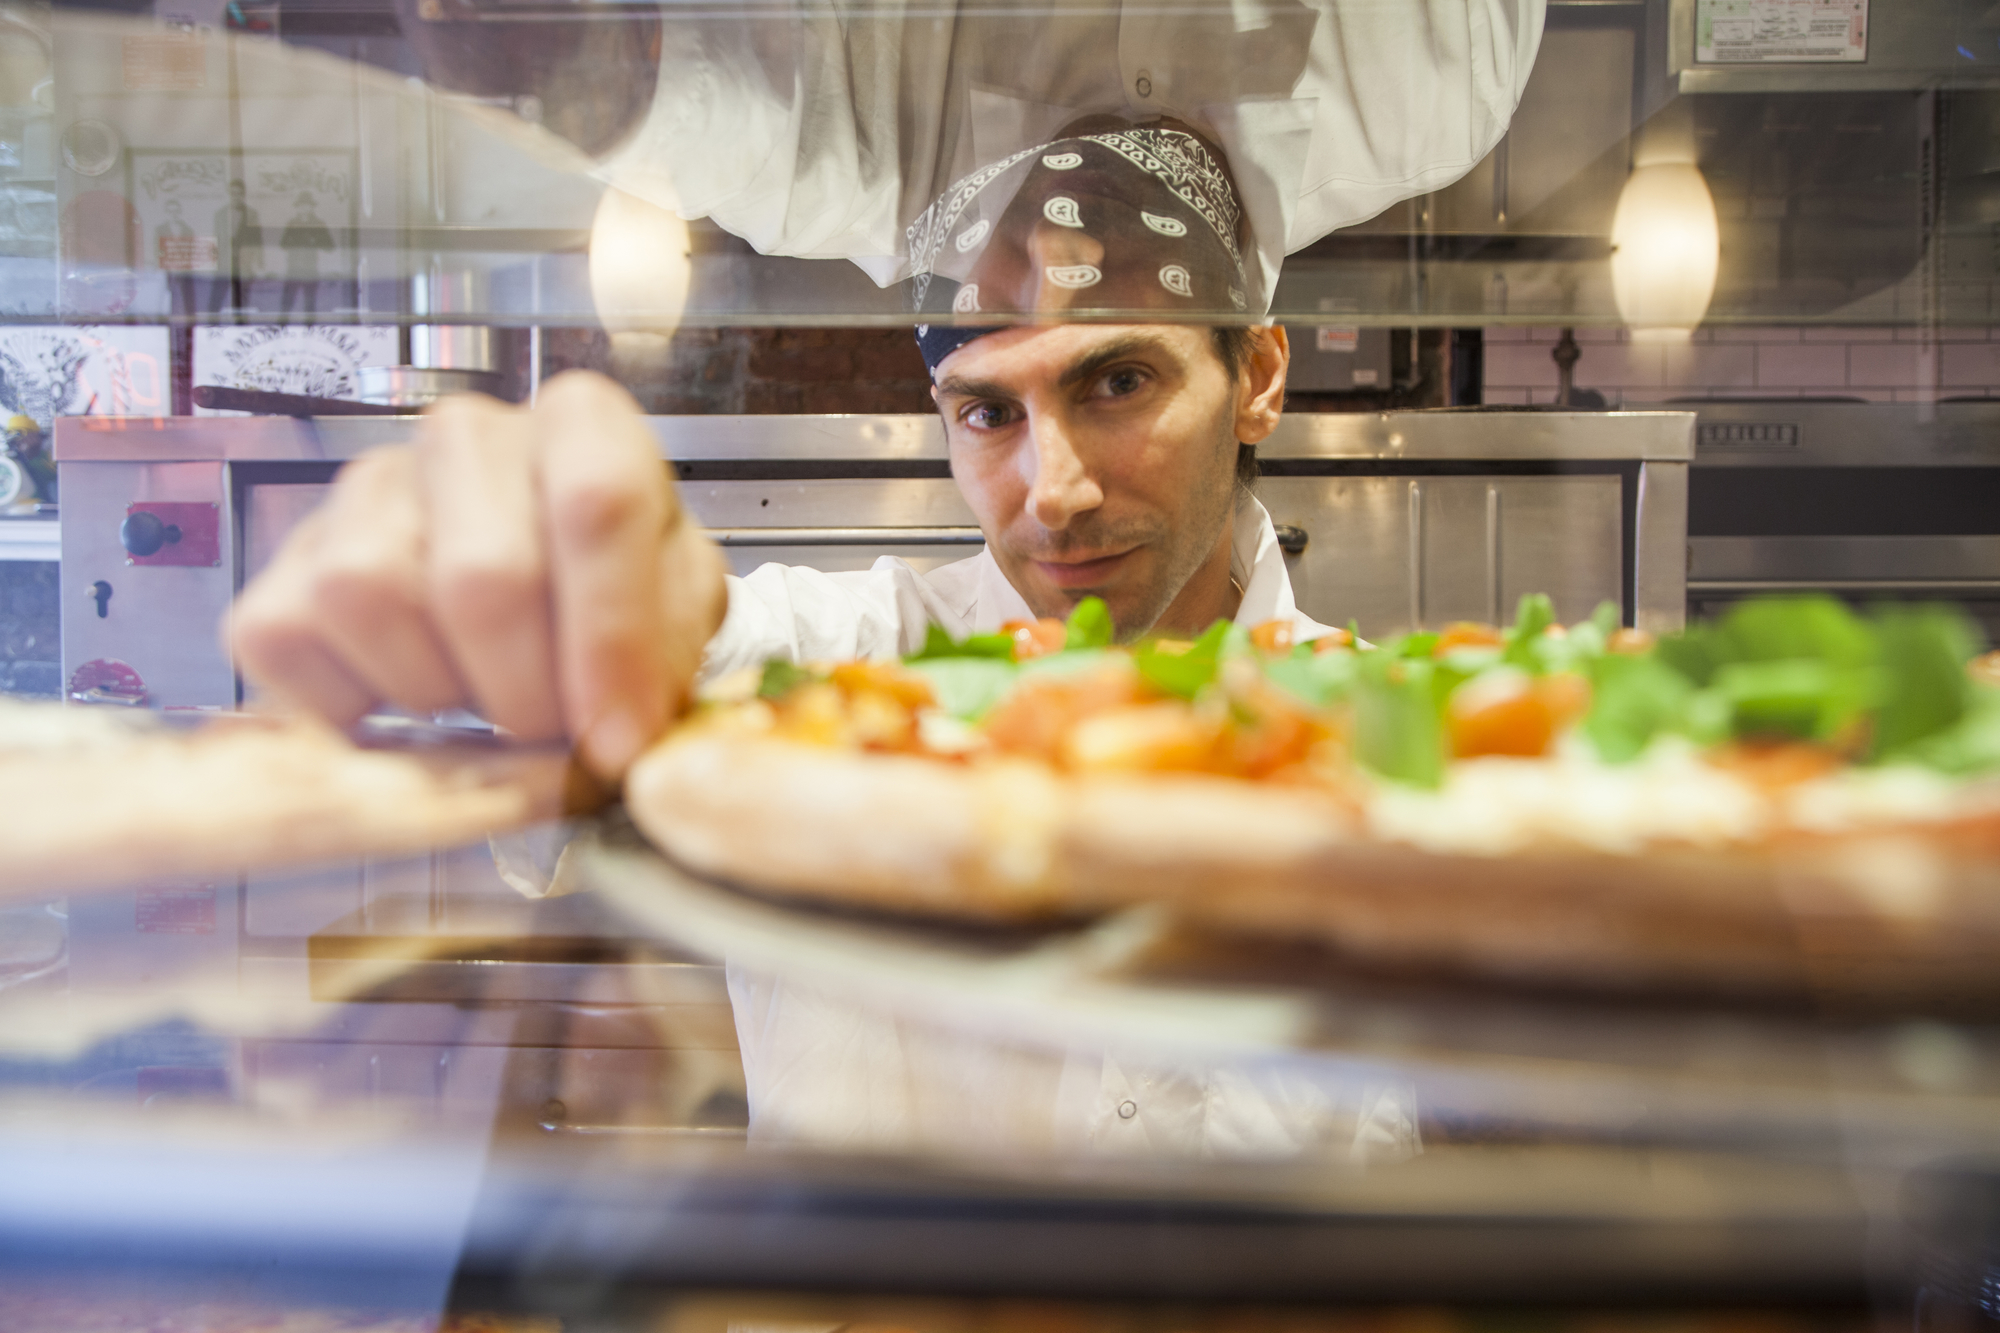 a-picture-of-a-new-york-pizza-chef-how-much-spending-money-new-york